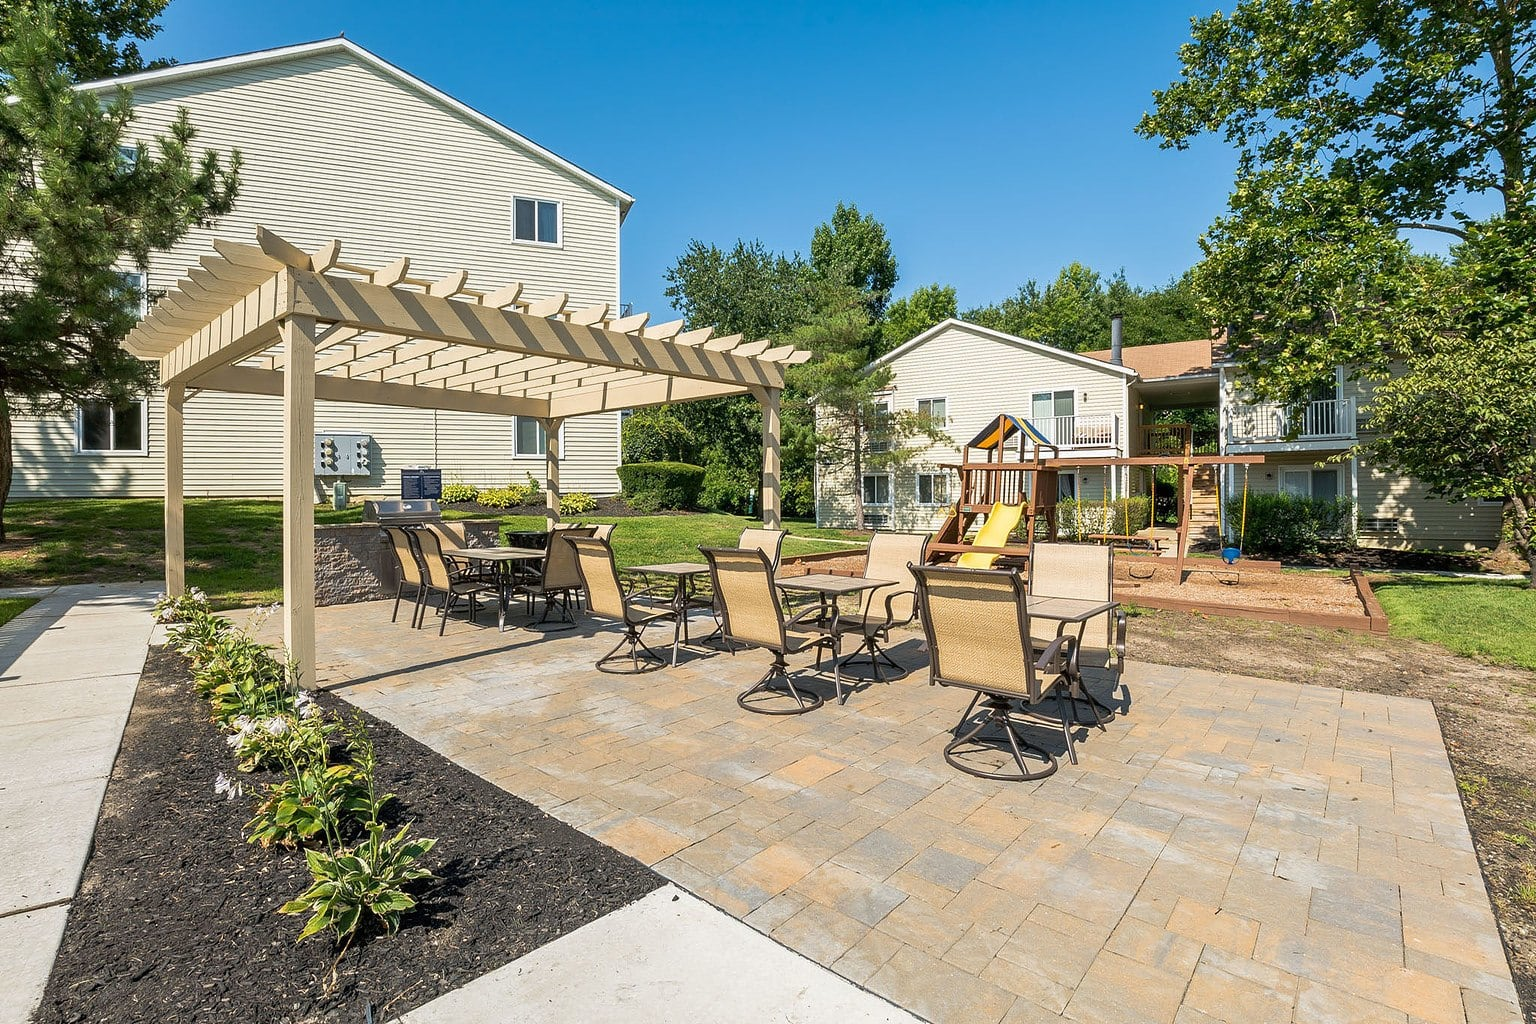 Playground and Patio At The Village at Voorhees in Voorhees, NJ